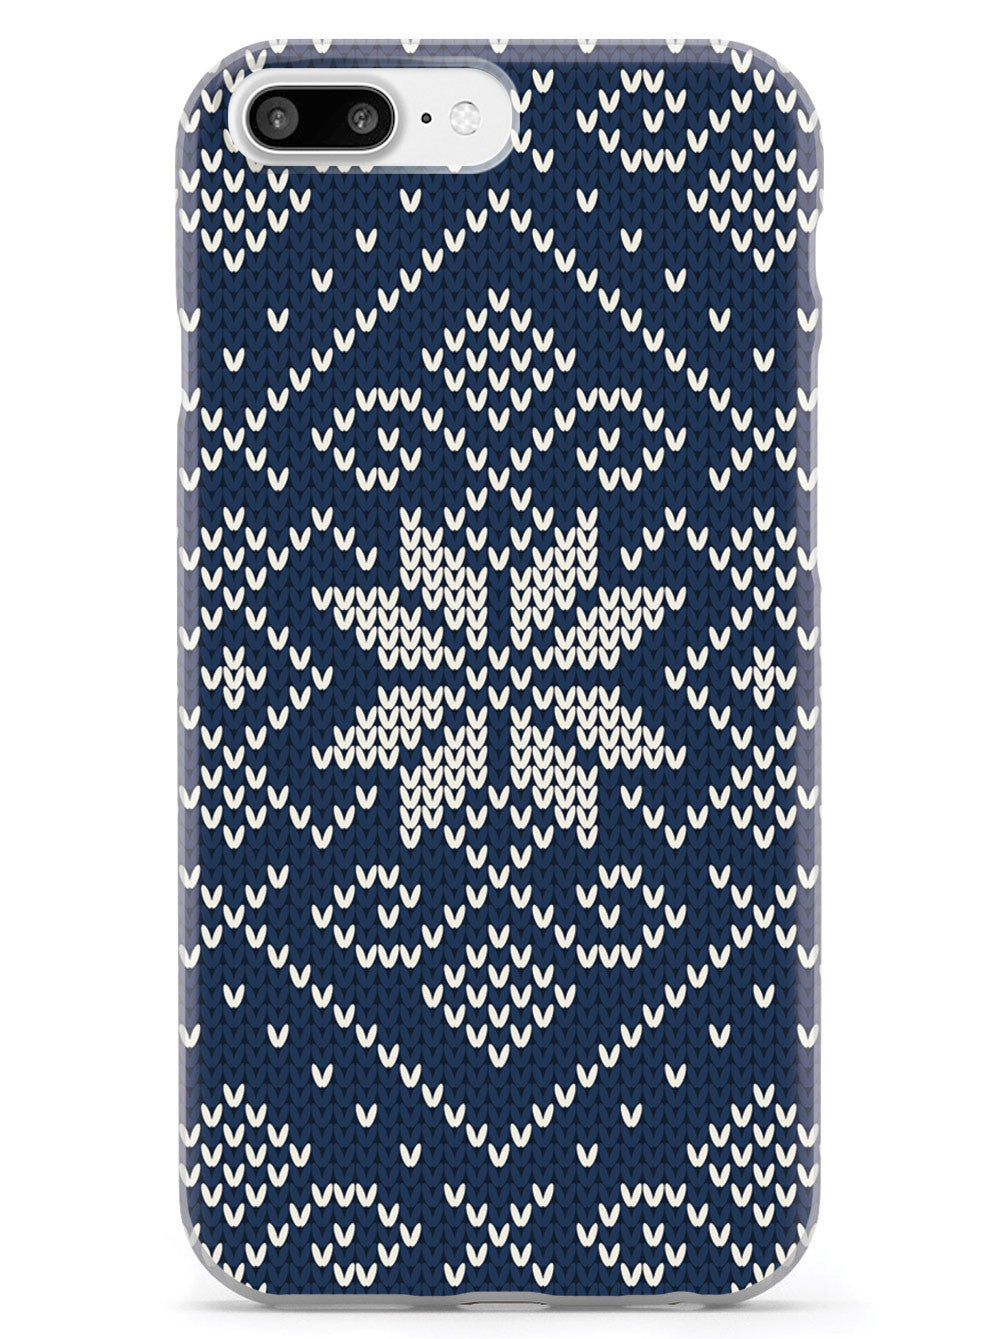 Blue and White Sweater Texturized - White Case